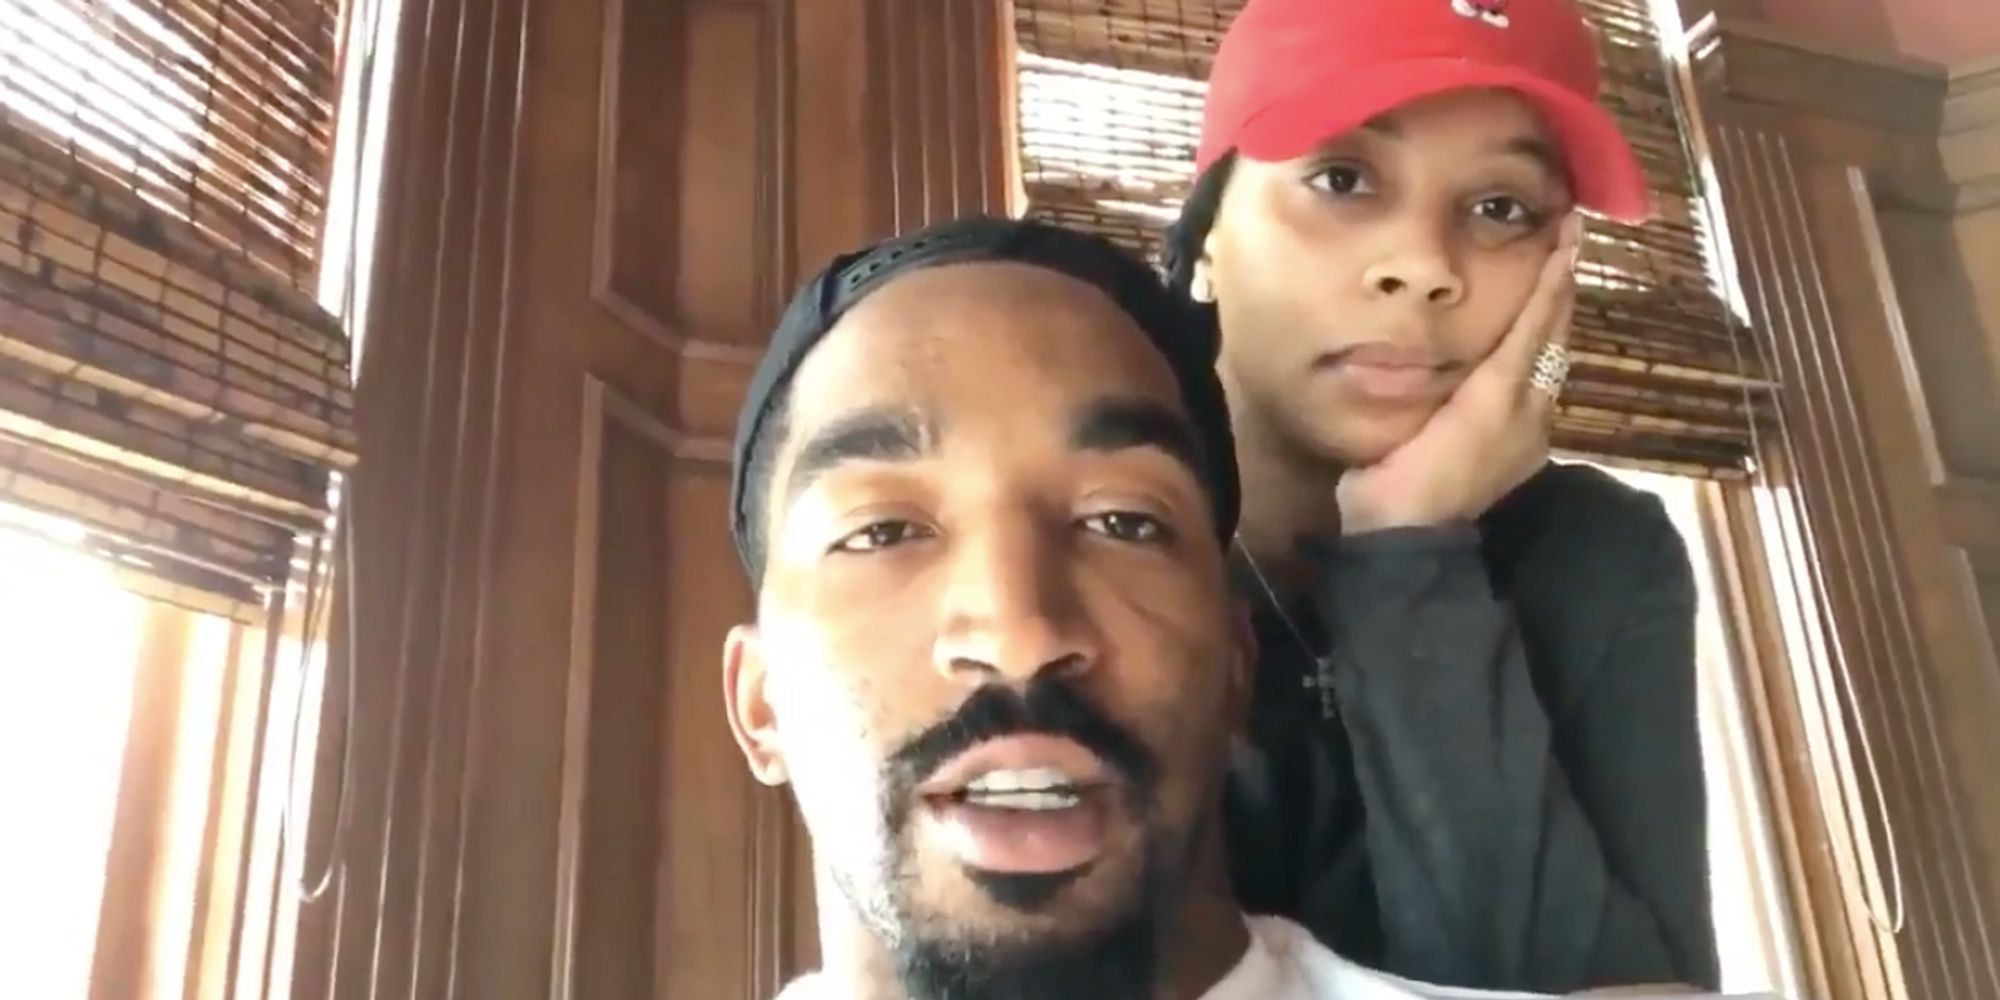 NBA Player And Wife Reveal Baby Was Born 5 Months Early In Emotional Video